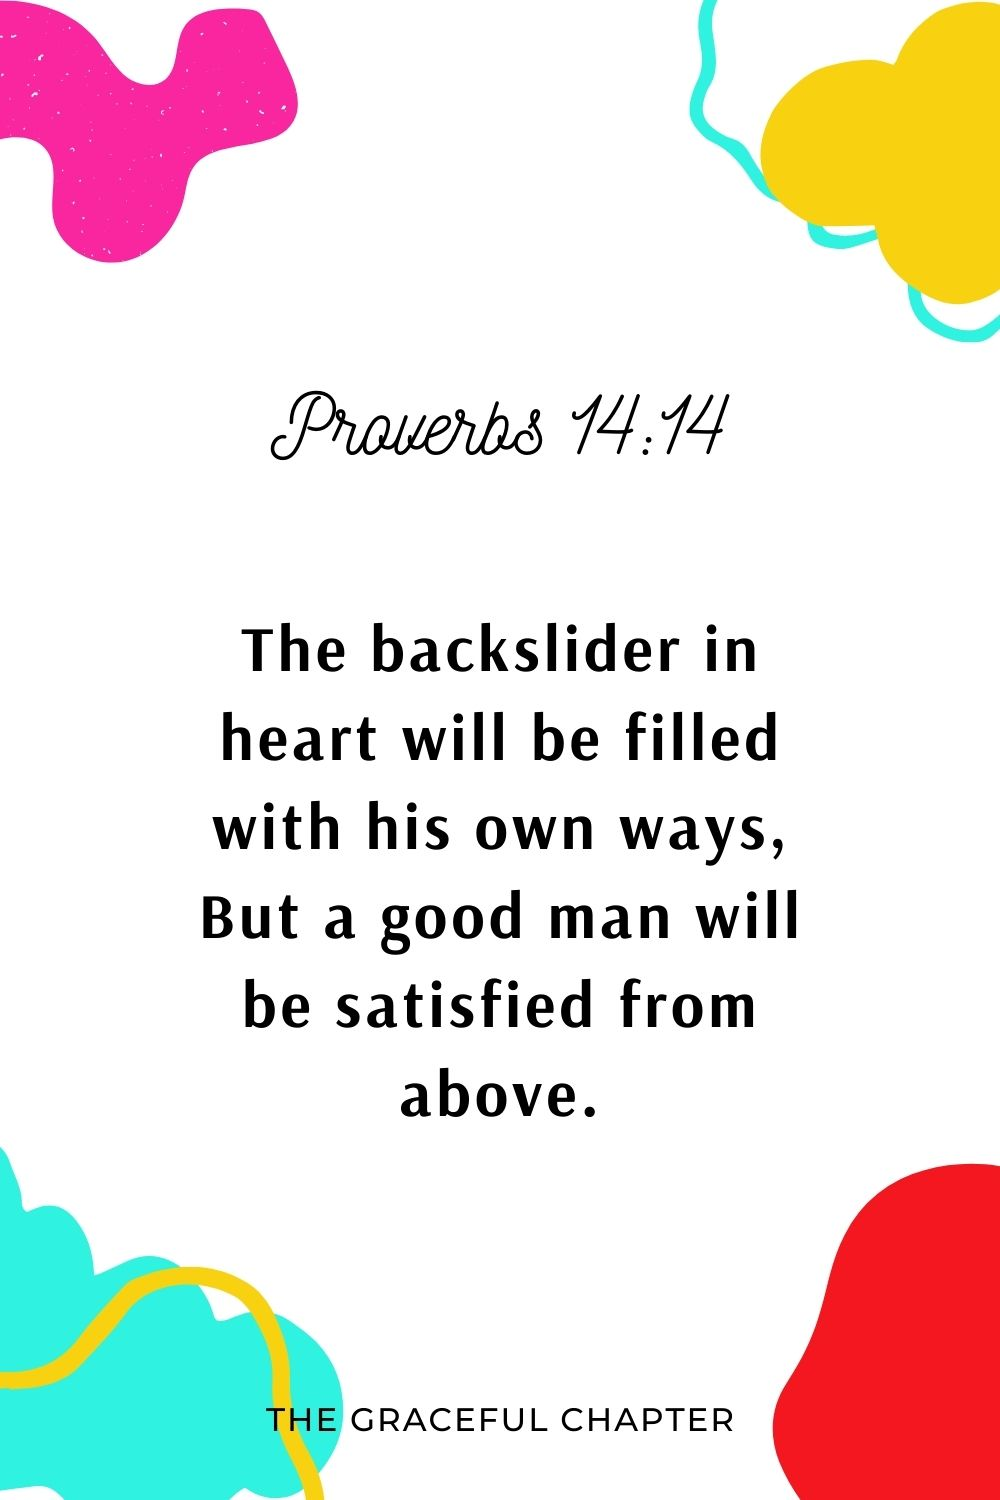 The backslider in heart will be filled with his own ways, But a good man will be satisfied from above. Proverbs 14:14